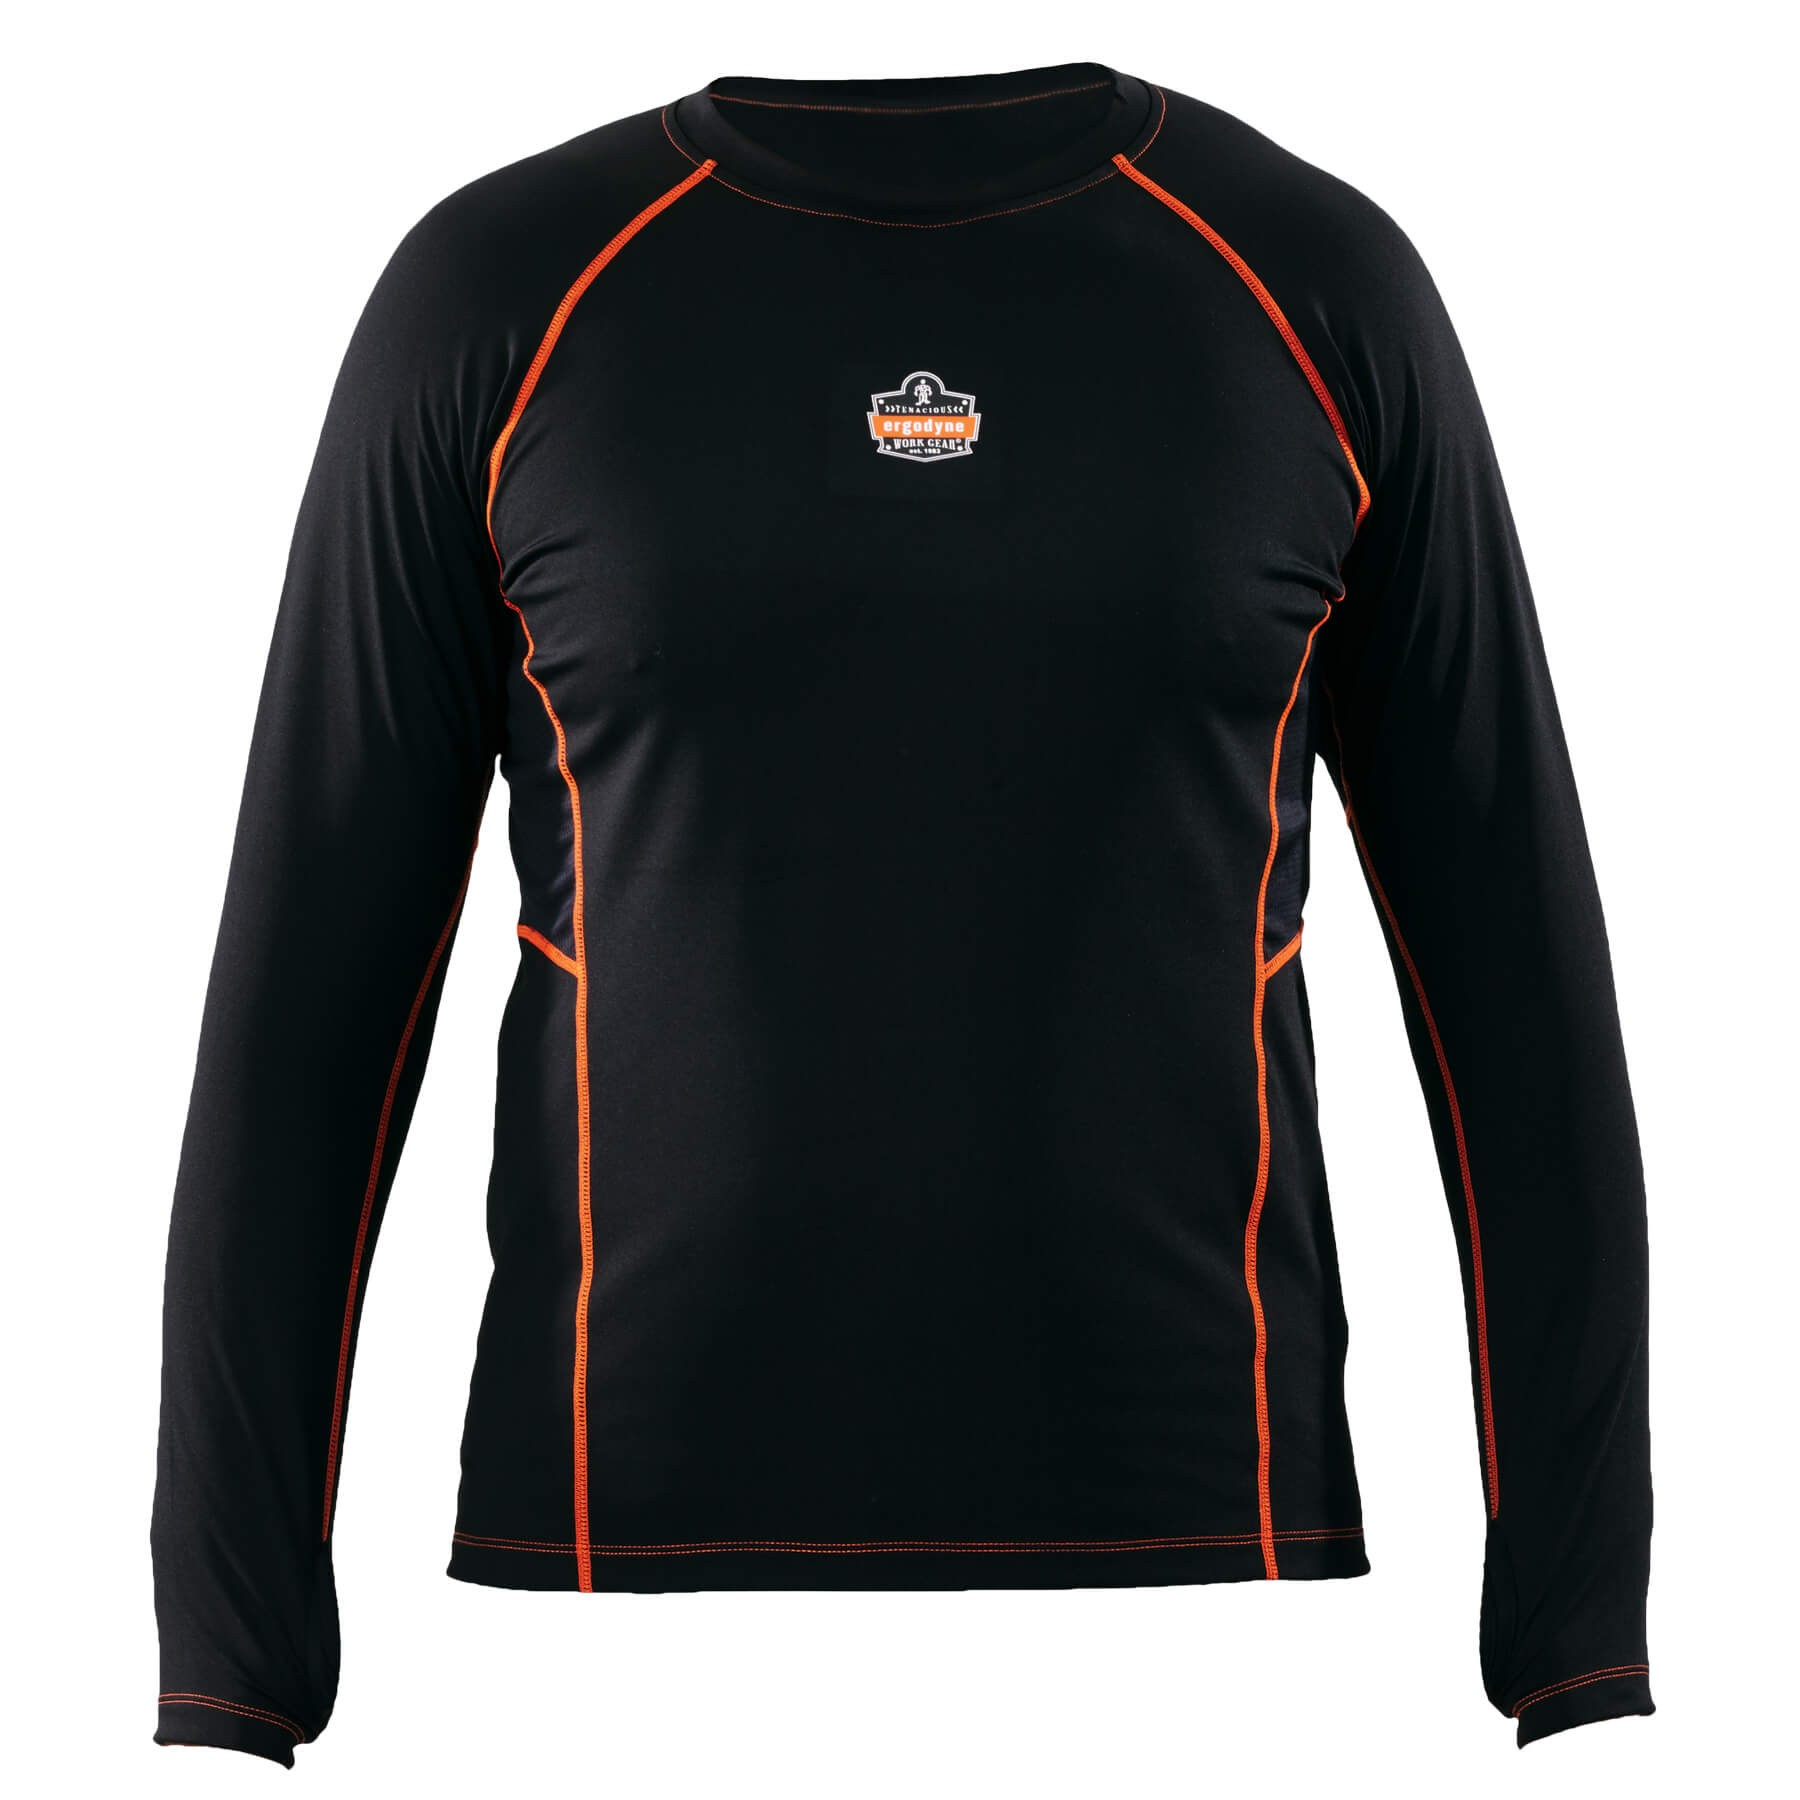 ergodyne n ferno 6435 base layer thermal long sleeve shirt